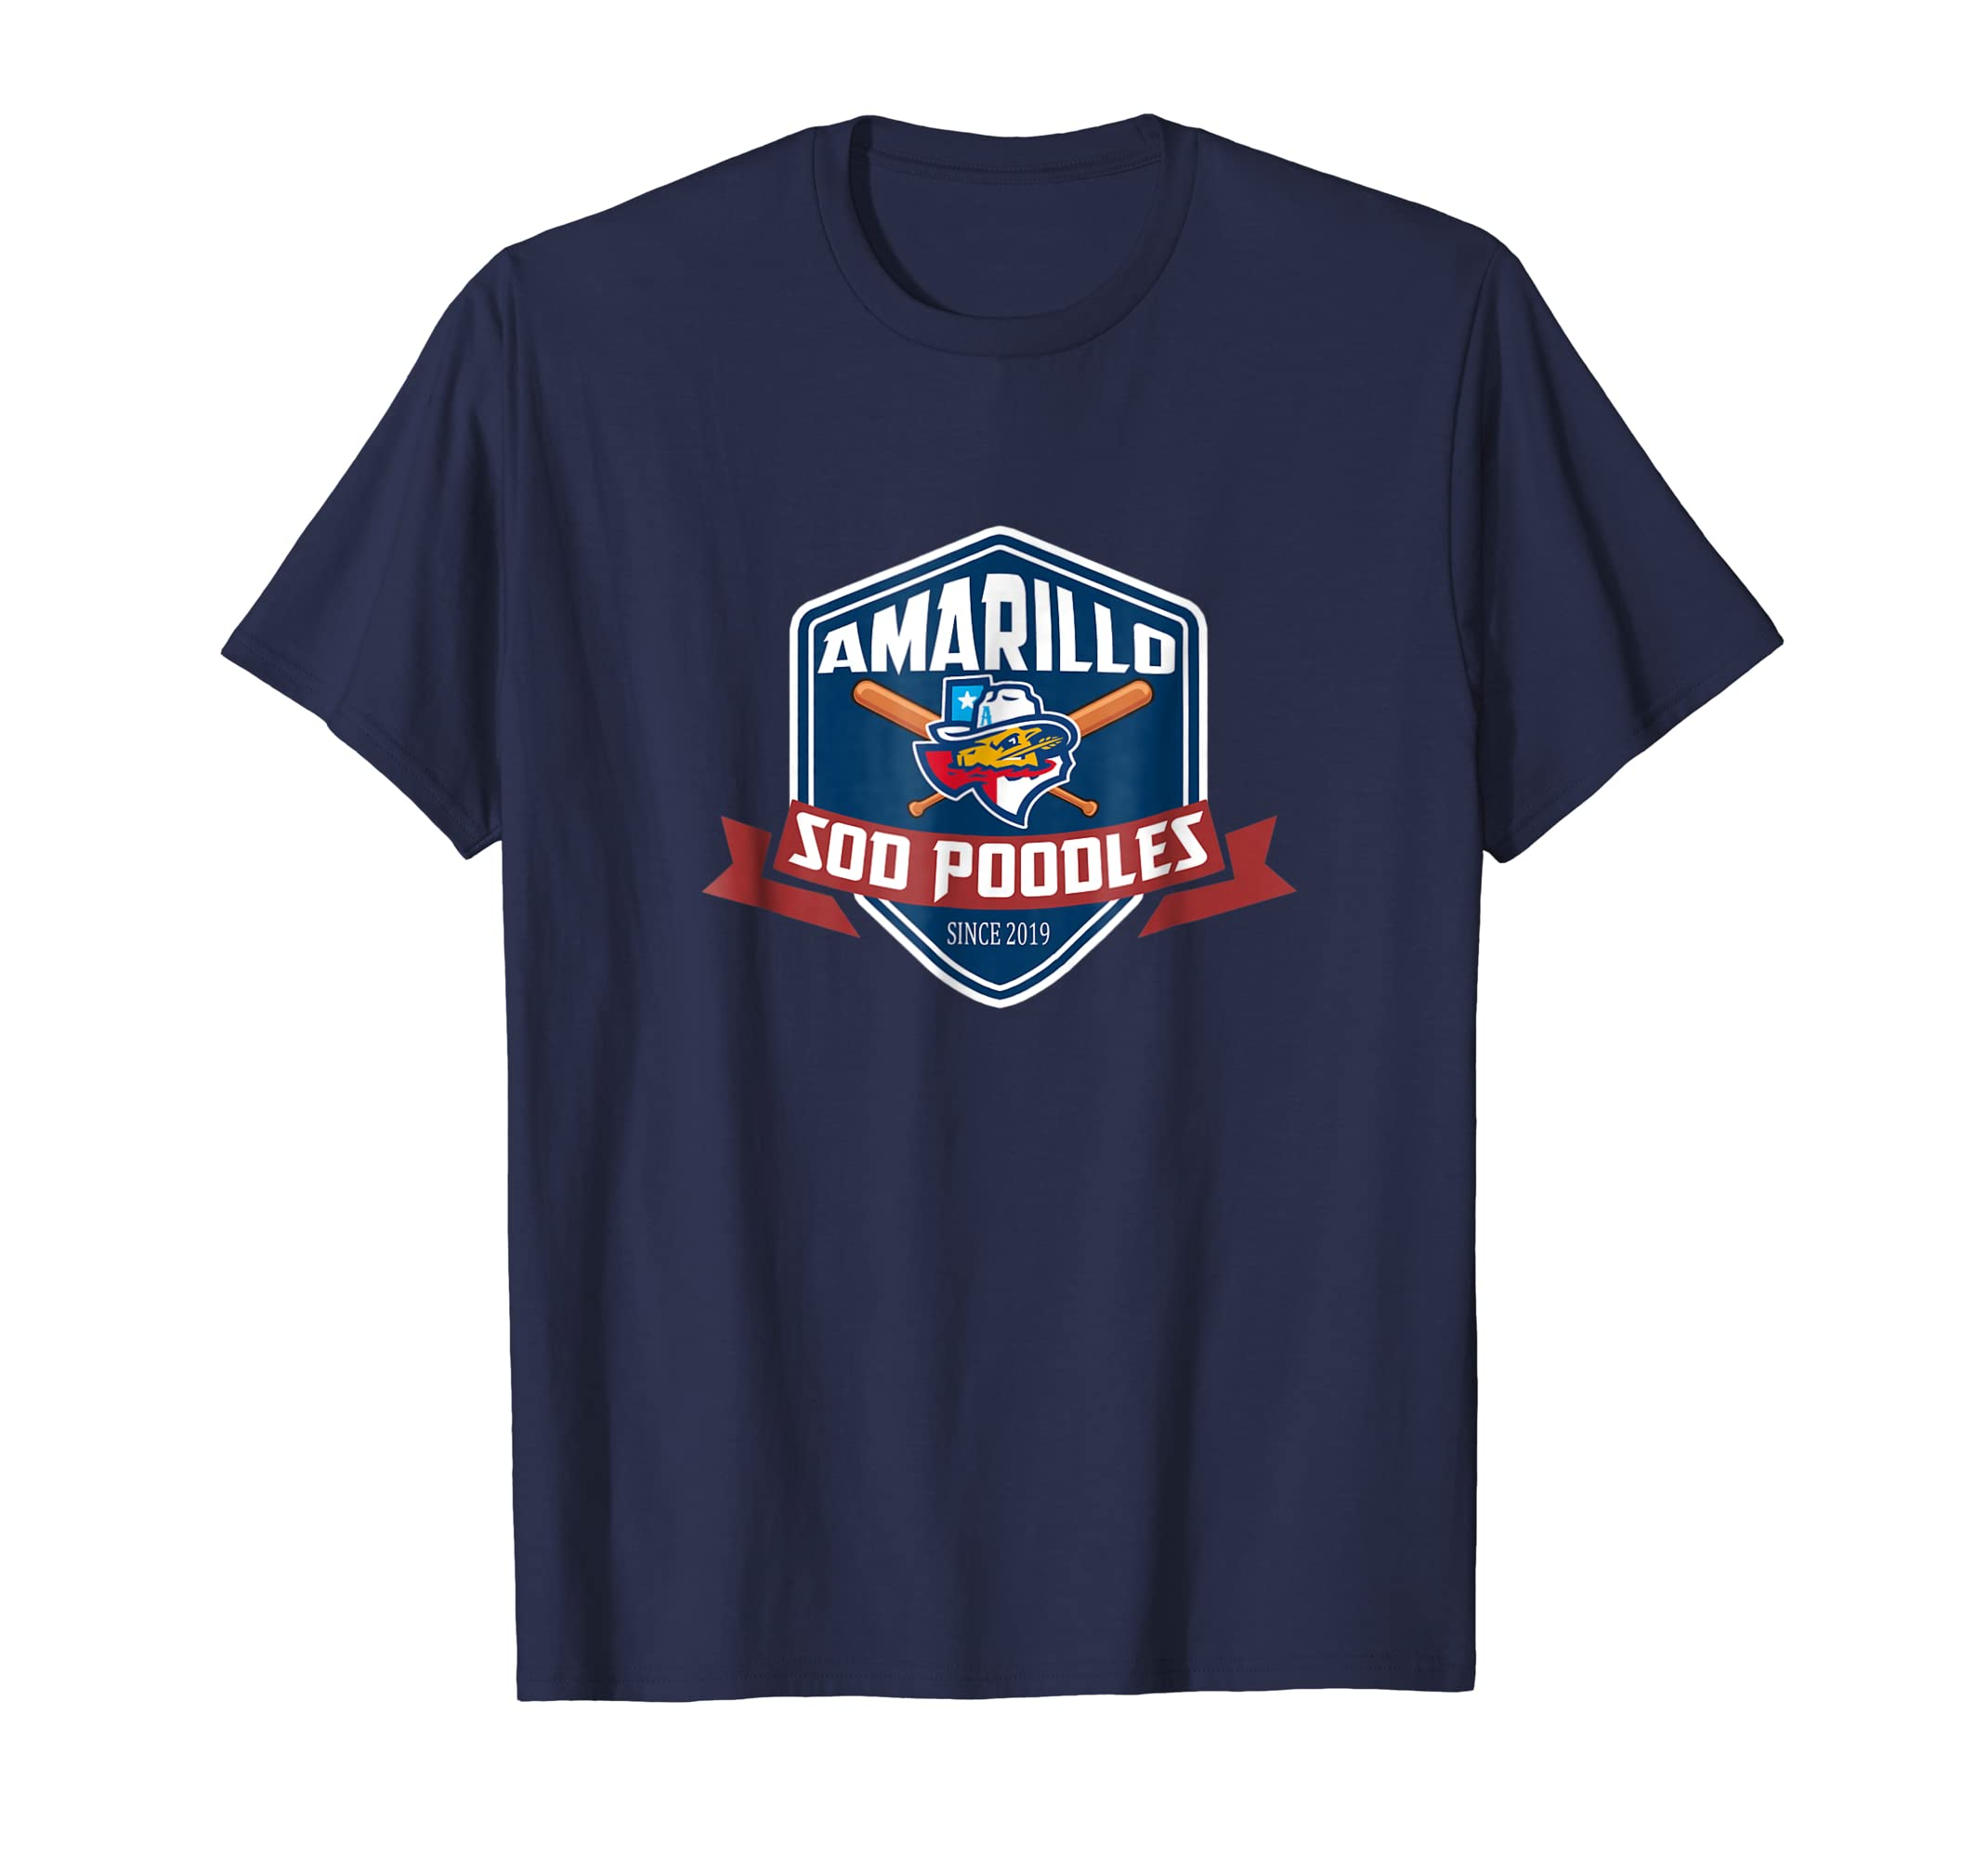 Amarillo Sod Poodles T Shirt New Baseball Team-azvn